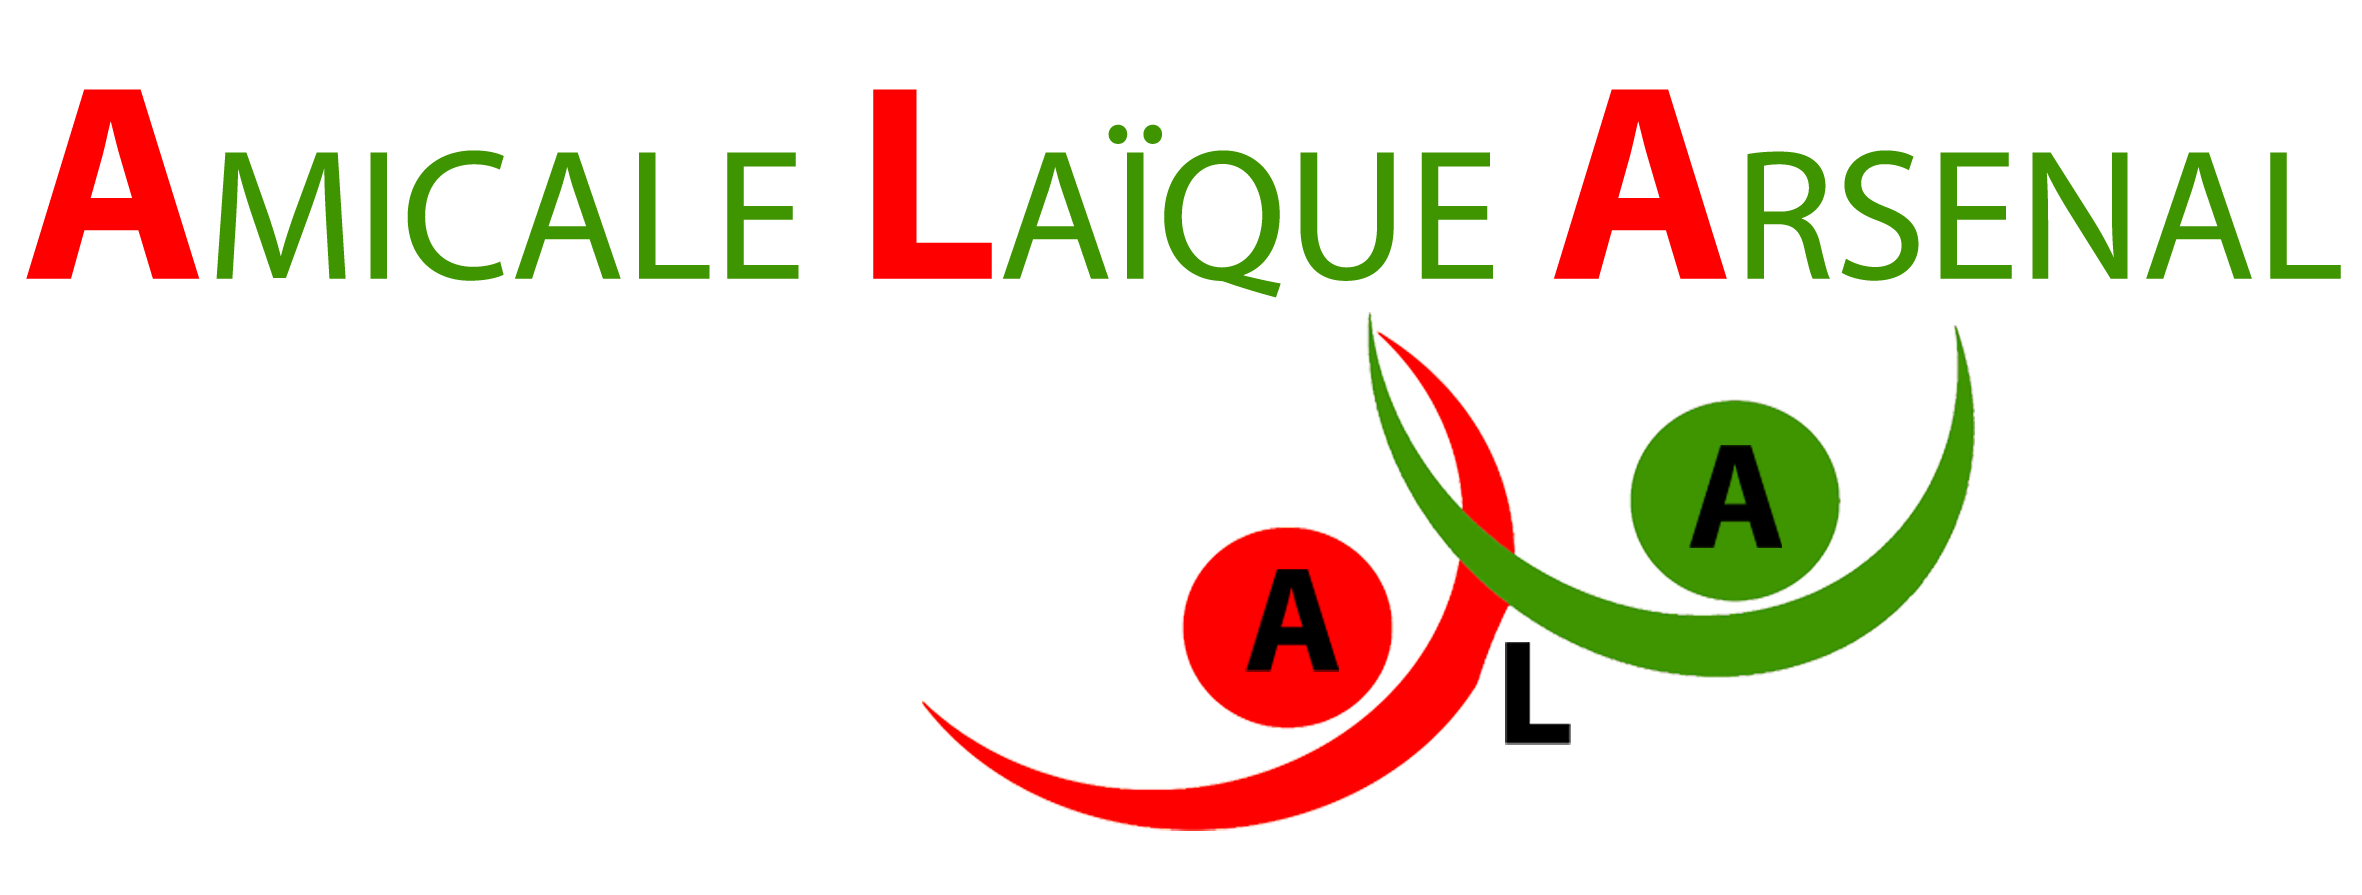 Logo de AMICALE LAIQUE ARSENAL